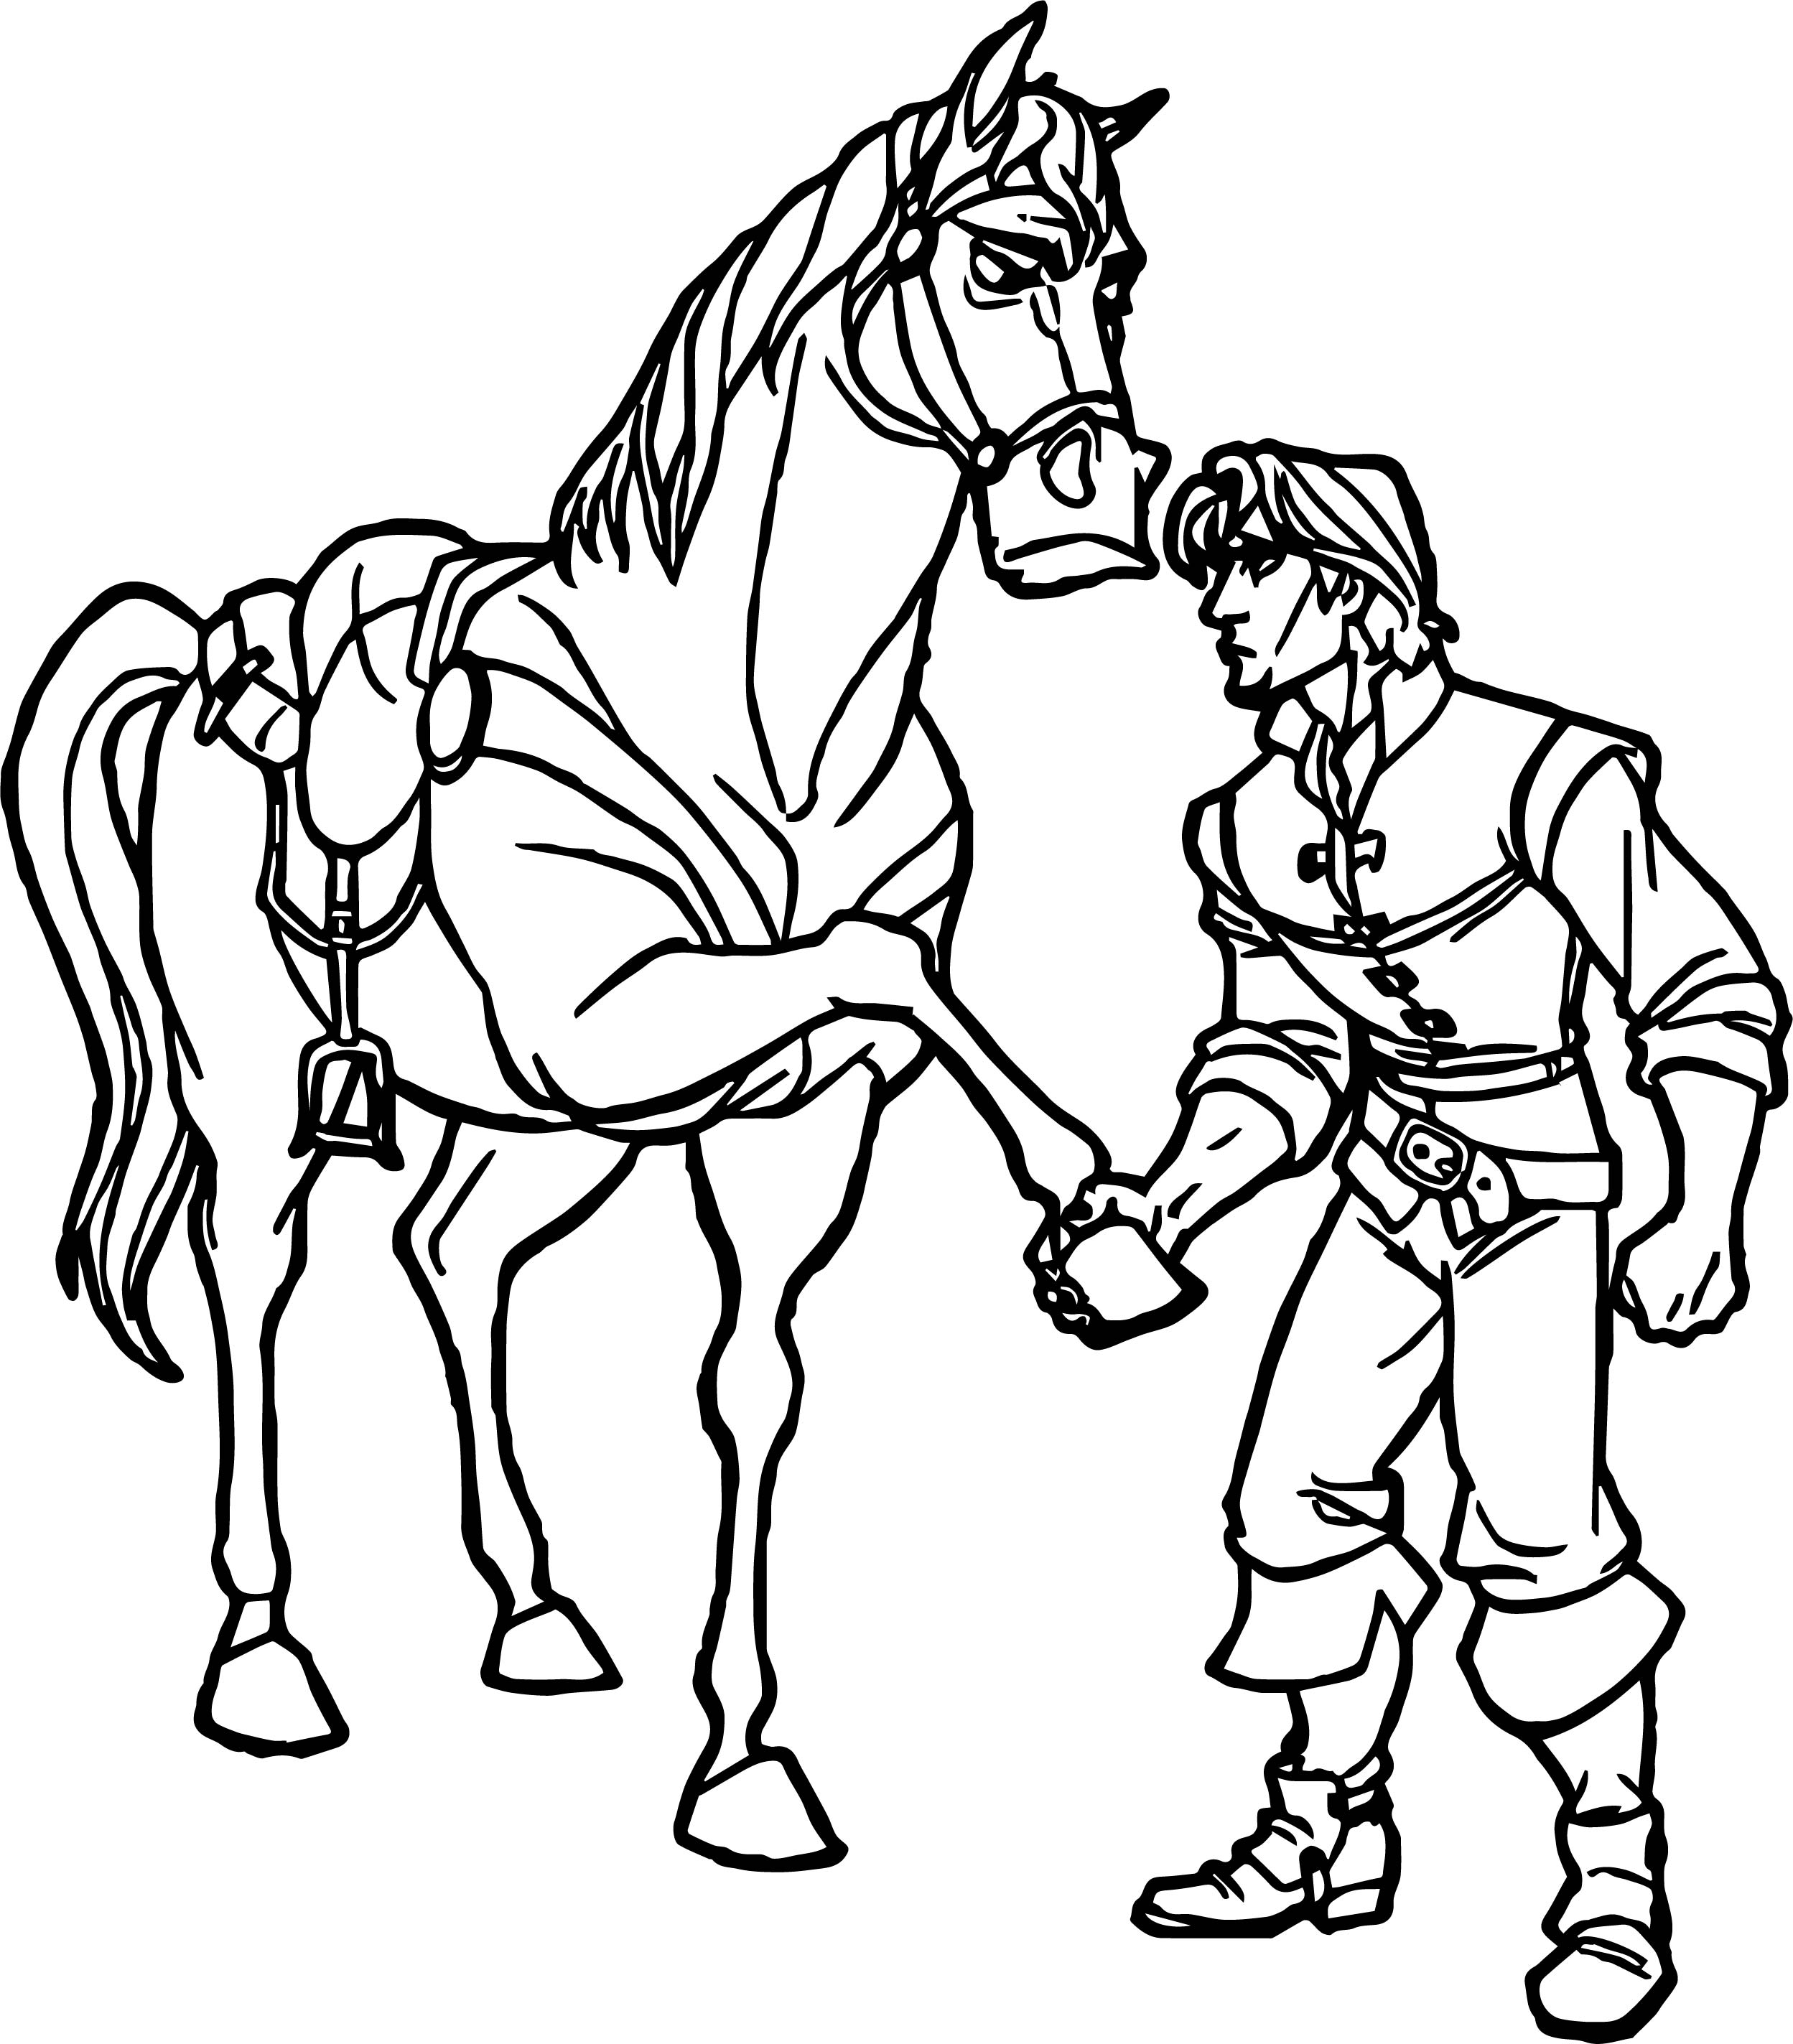 Rapunzel Pascal Ausmalbilder : Tangled Coloring Pages Rapunzel Rapunzel Colouring Pages